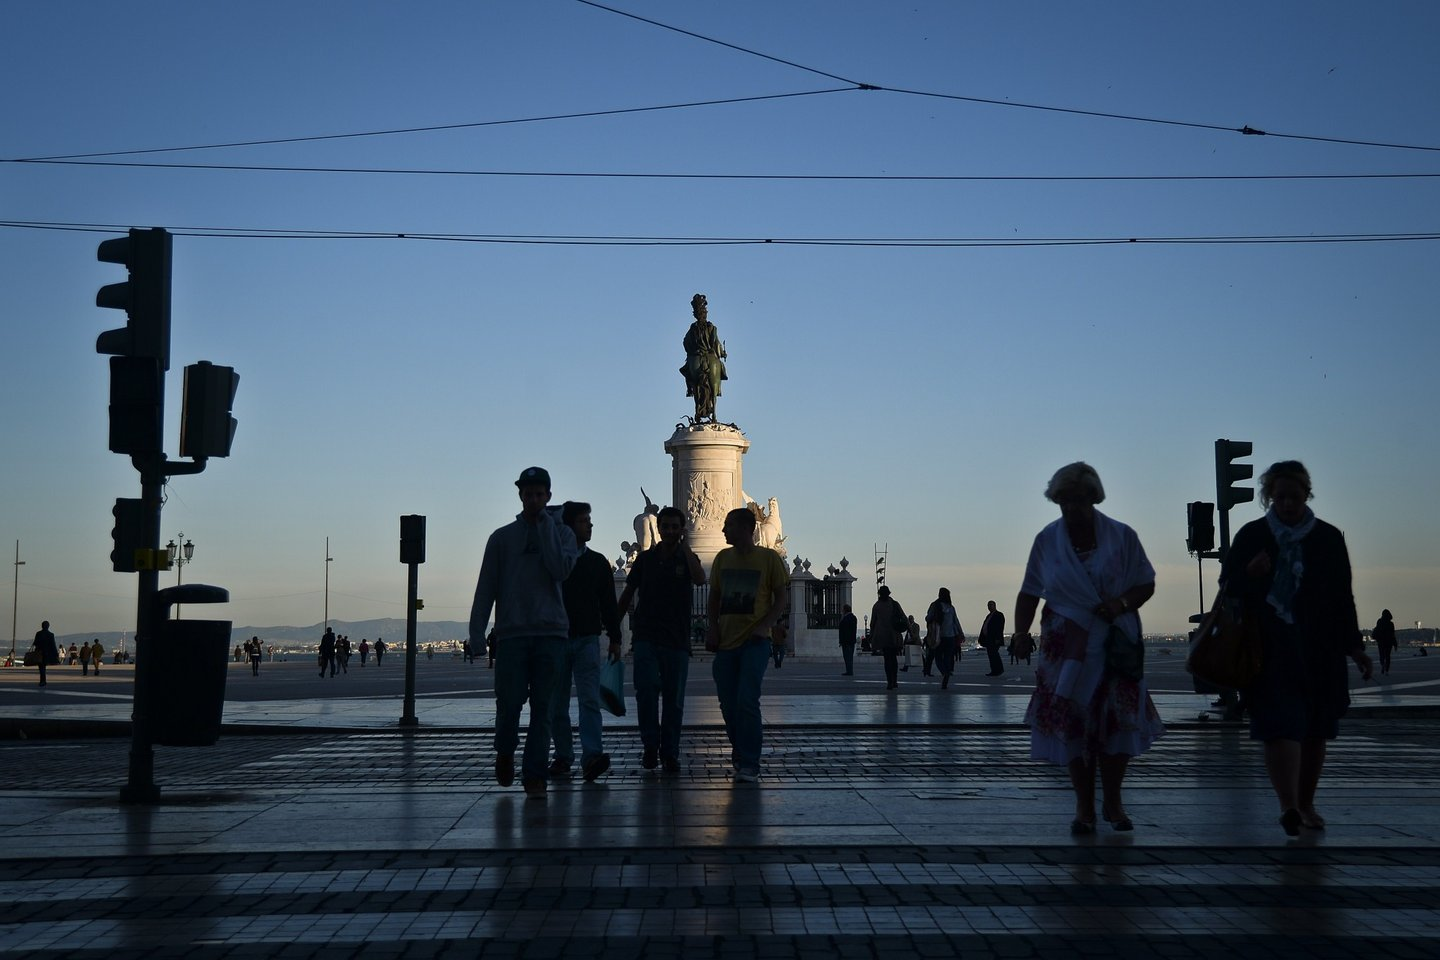 A picture taken on April 28, 2014 shows people passing by Terreiro do Paco Square in downtown Lisbon. AFP PHOTO / PATRICIA DE MELO MOREIRA (Photo credit should read PATRICIA DE MELO MOREIRA/AFP/Getty Images)